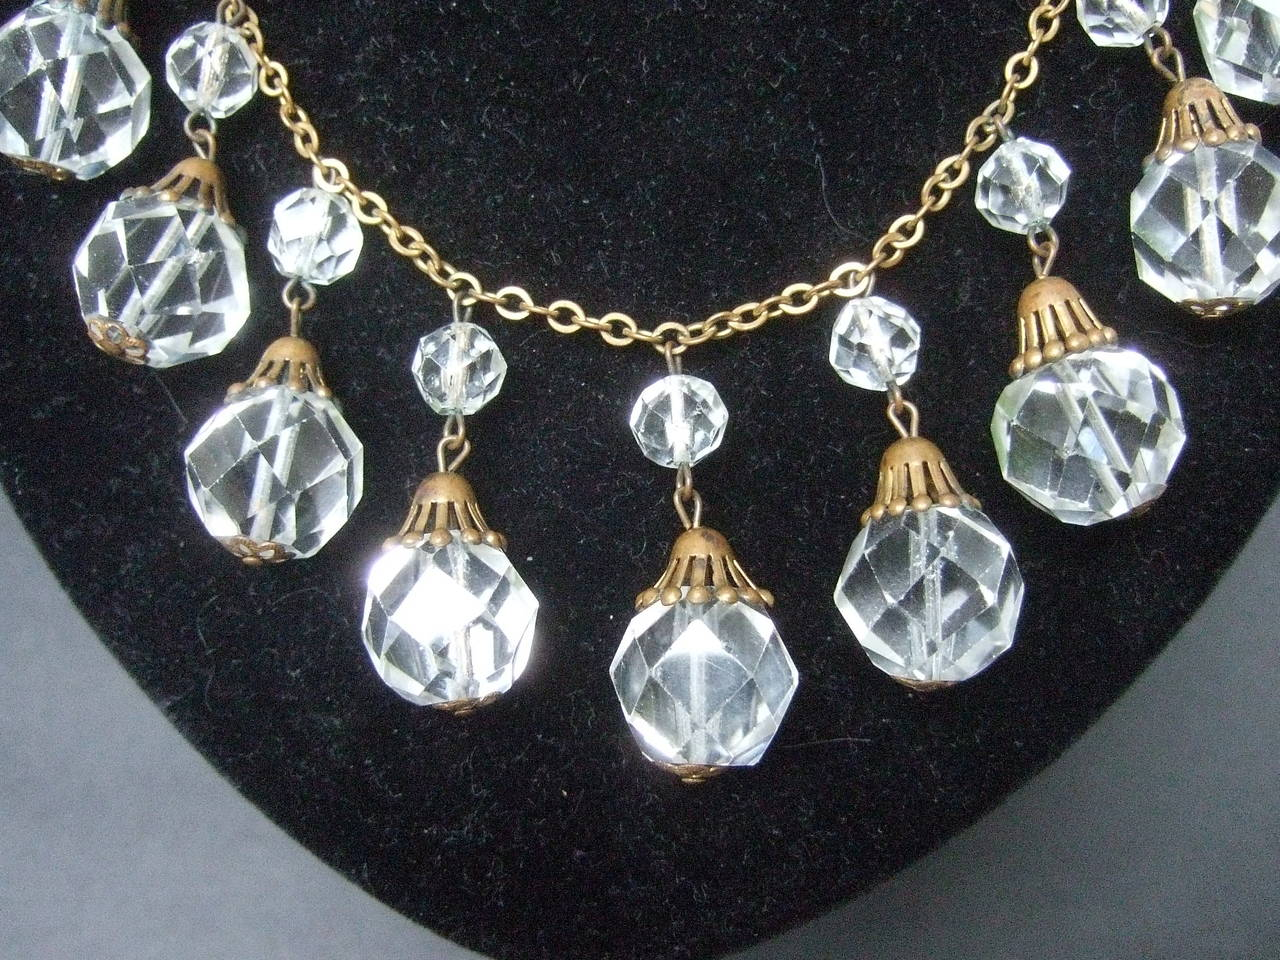 Opulent Art Deco Crystal Drop Necklace c 1940s 6